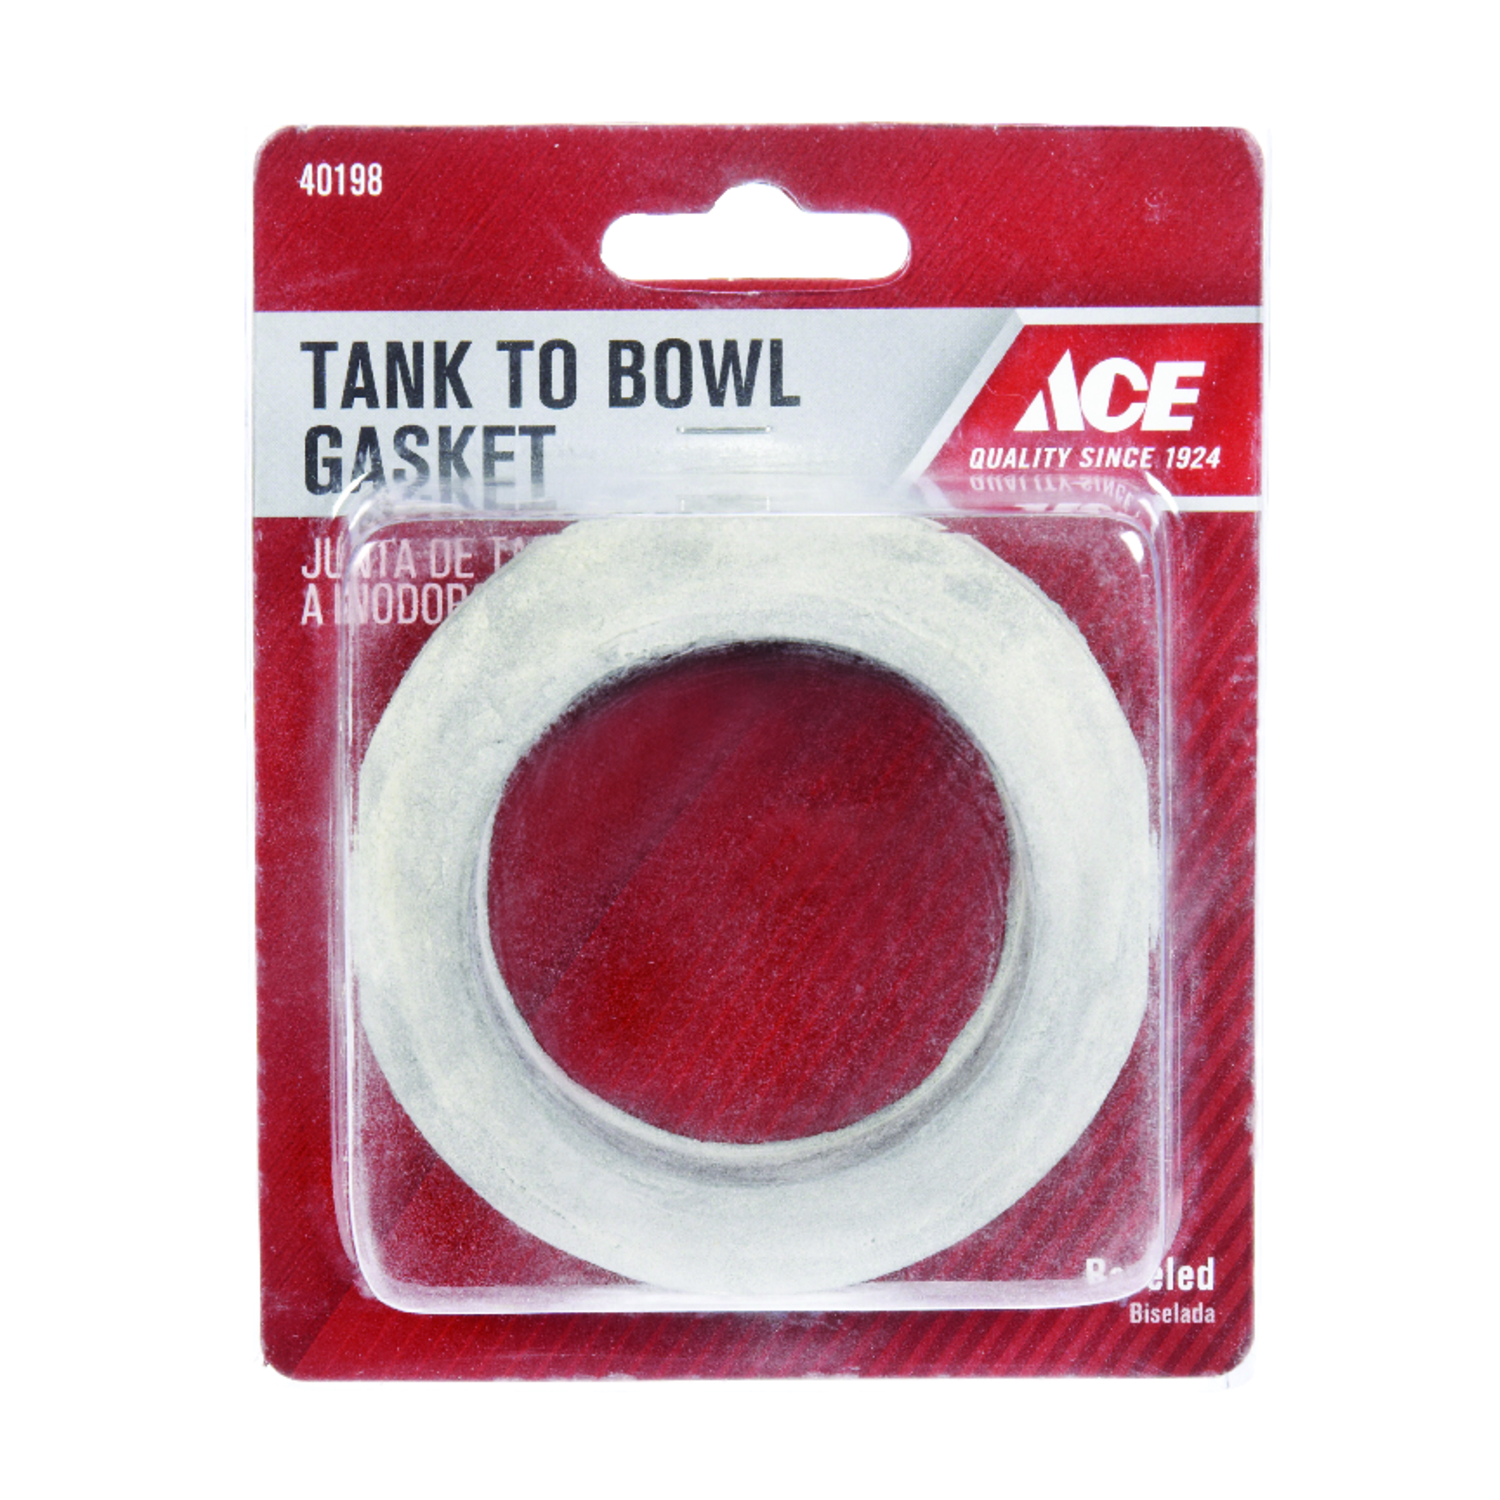 Ace  Tank to Bowl Gasket  2-1/4 in. H x 3-1/4 in. L